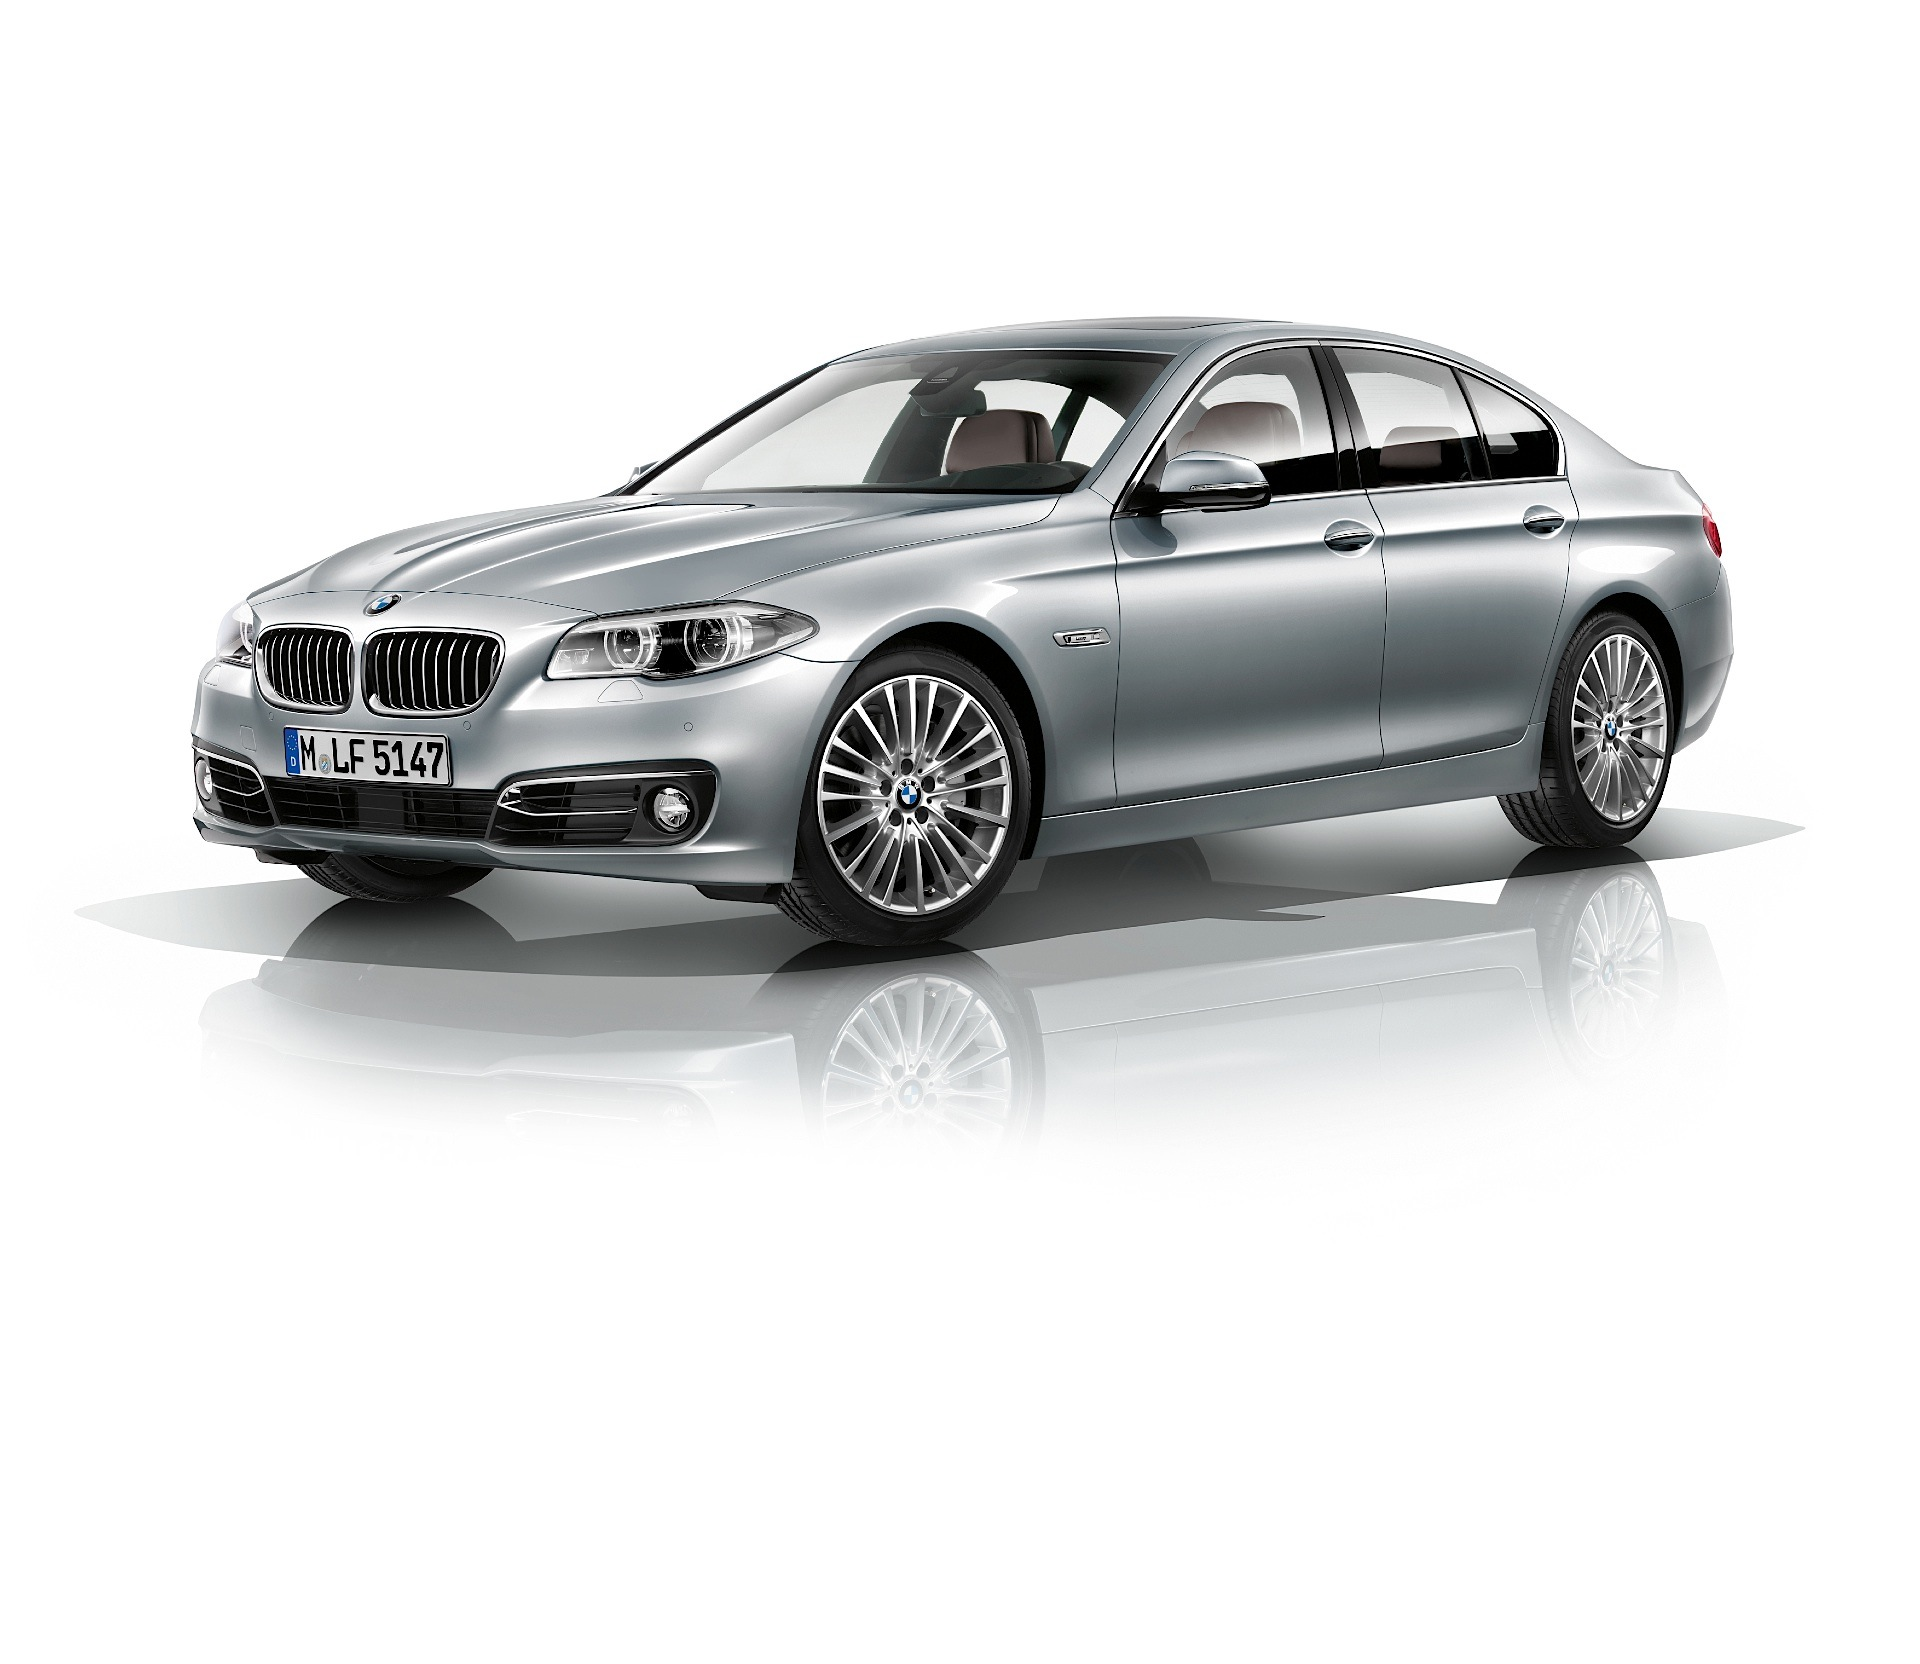 BMW 5 Series (F10) LCI Specs & Photos